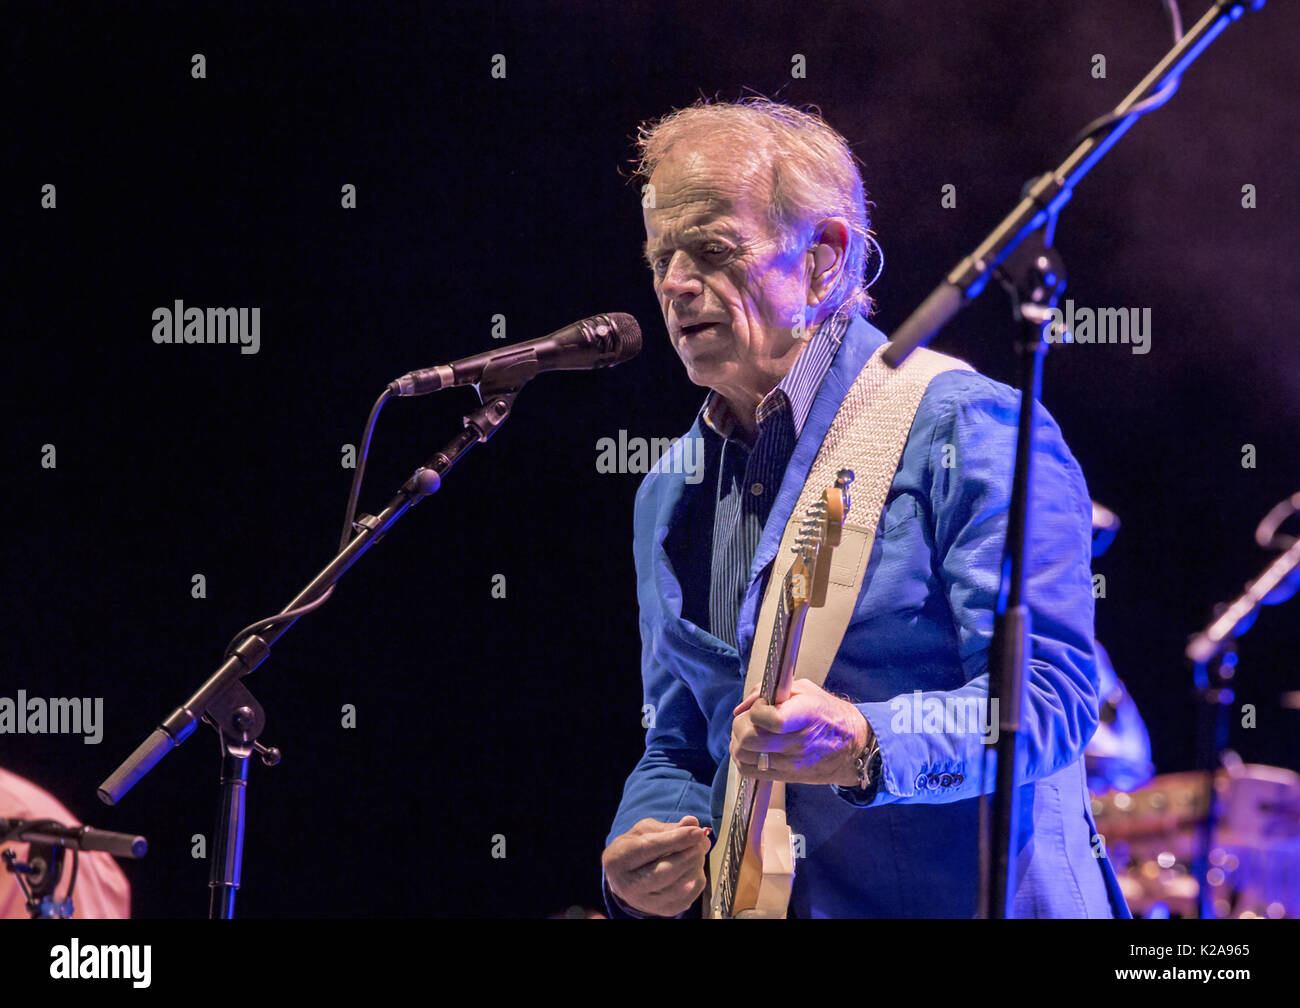 Brian Wilson Performing 'Pet Sounds 50th' at Liverpool Exhibition Centre  Featuring: Al Jardine Where: Liverpool, United Kingdom When: 29 Jul 2017 Credit: Sakura/WENN.com - Stock Image